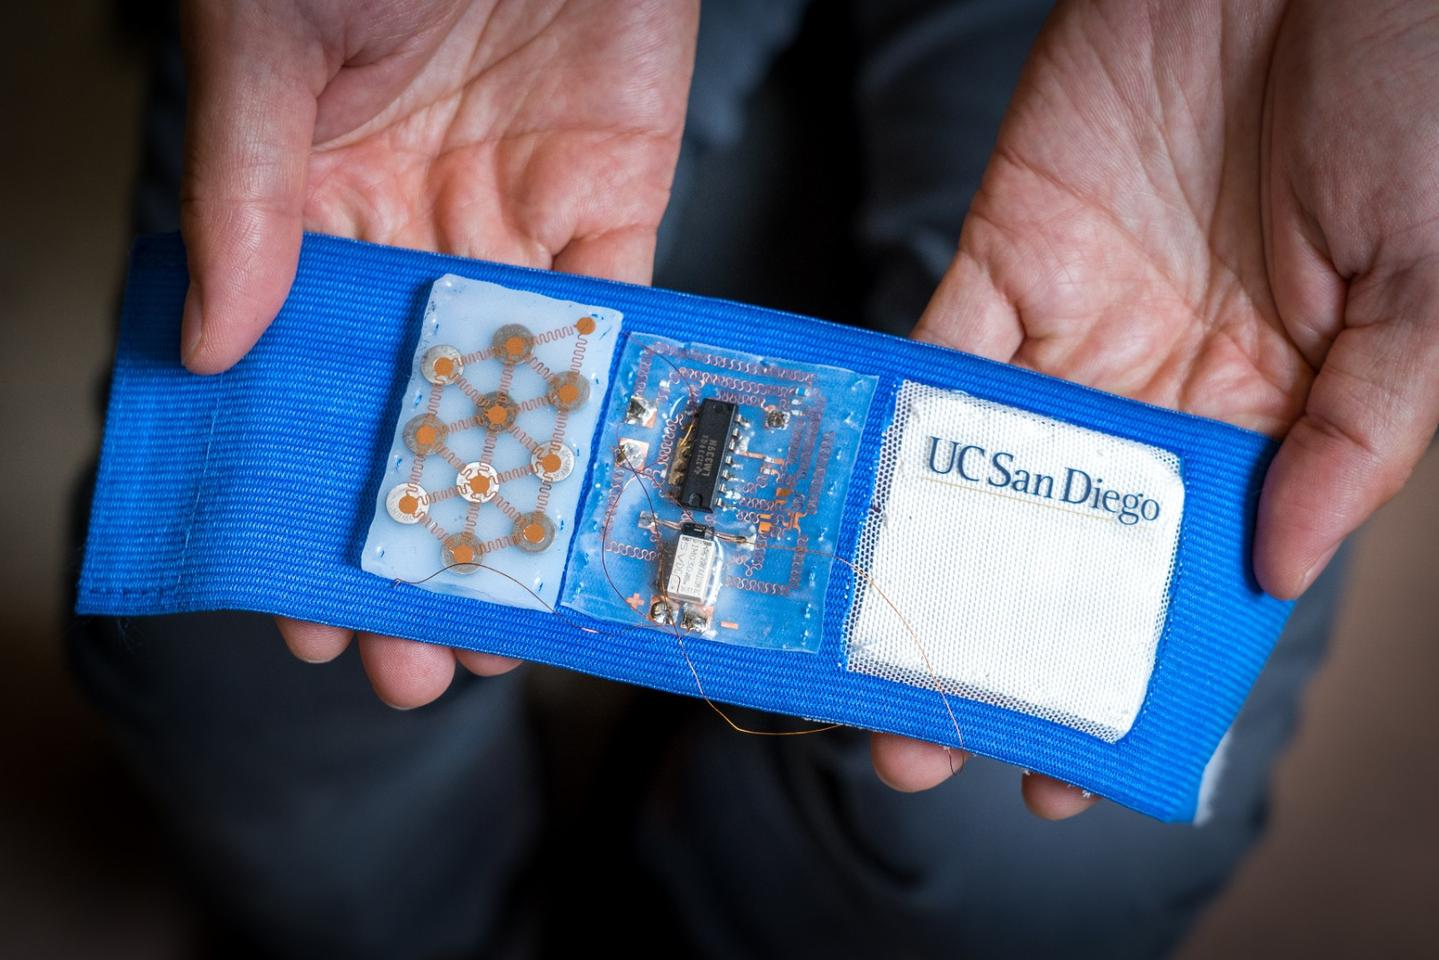 The proof-of-concept armband features a flexible battery, a stretchable circuit board, and a patch made up of thermoelectric alloys sandwiched between elastomer sheets